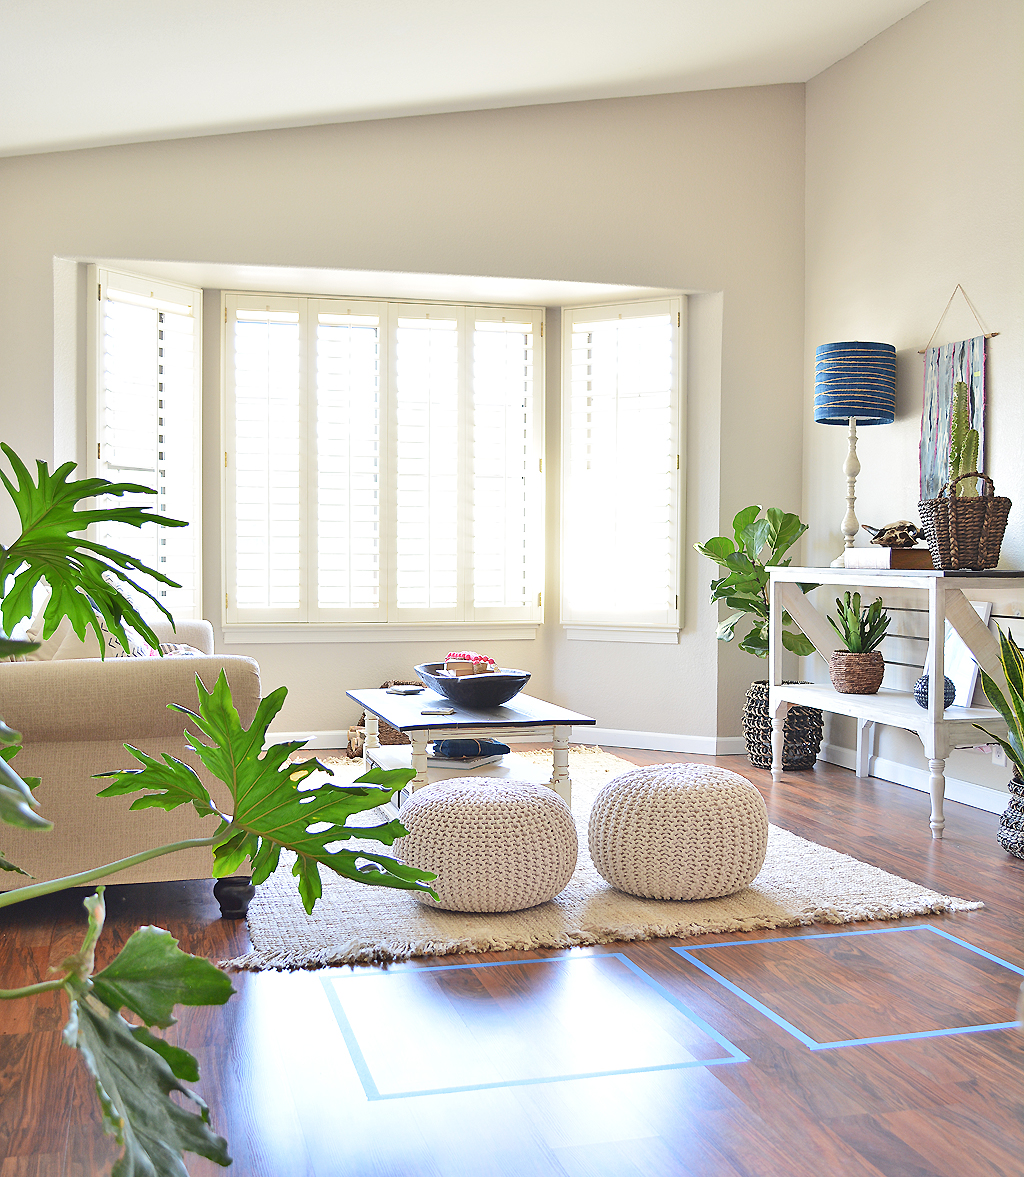 Designer Tip: How to Test Fit Home Decor Before Purchasing